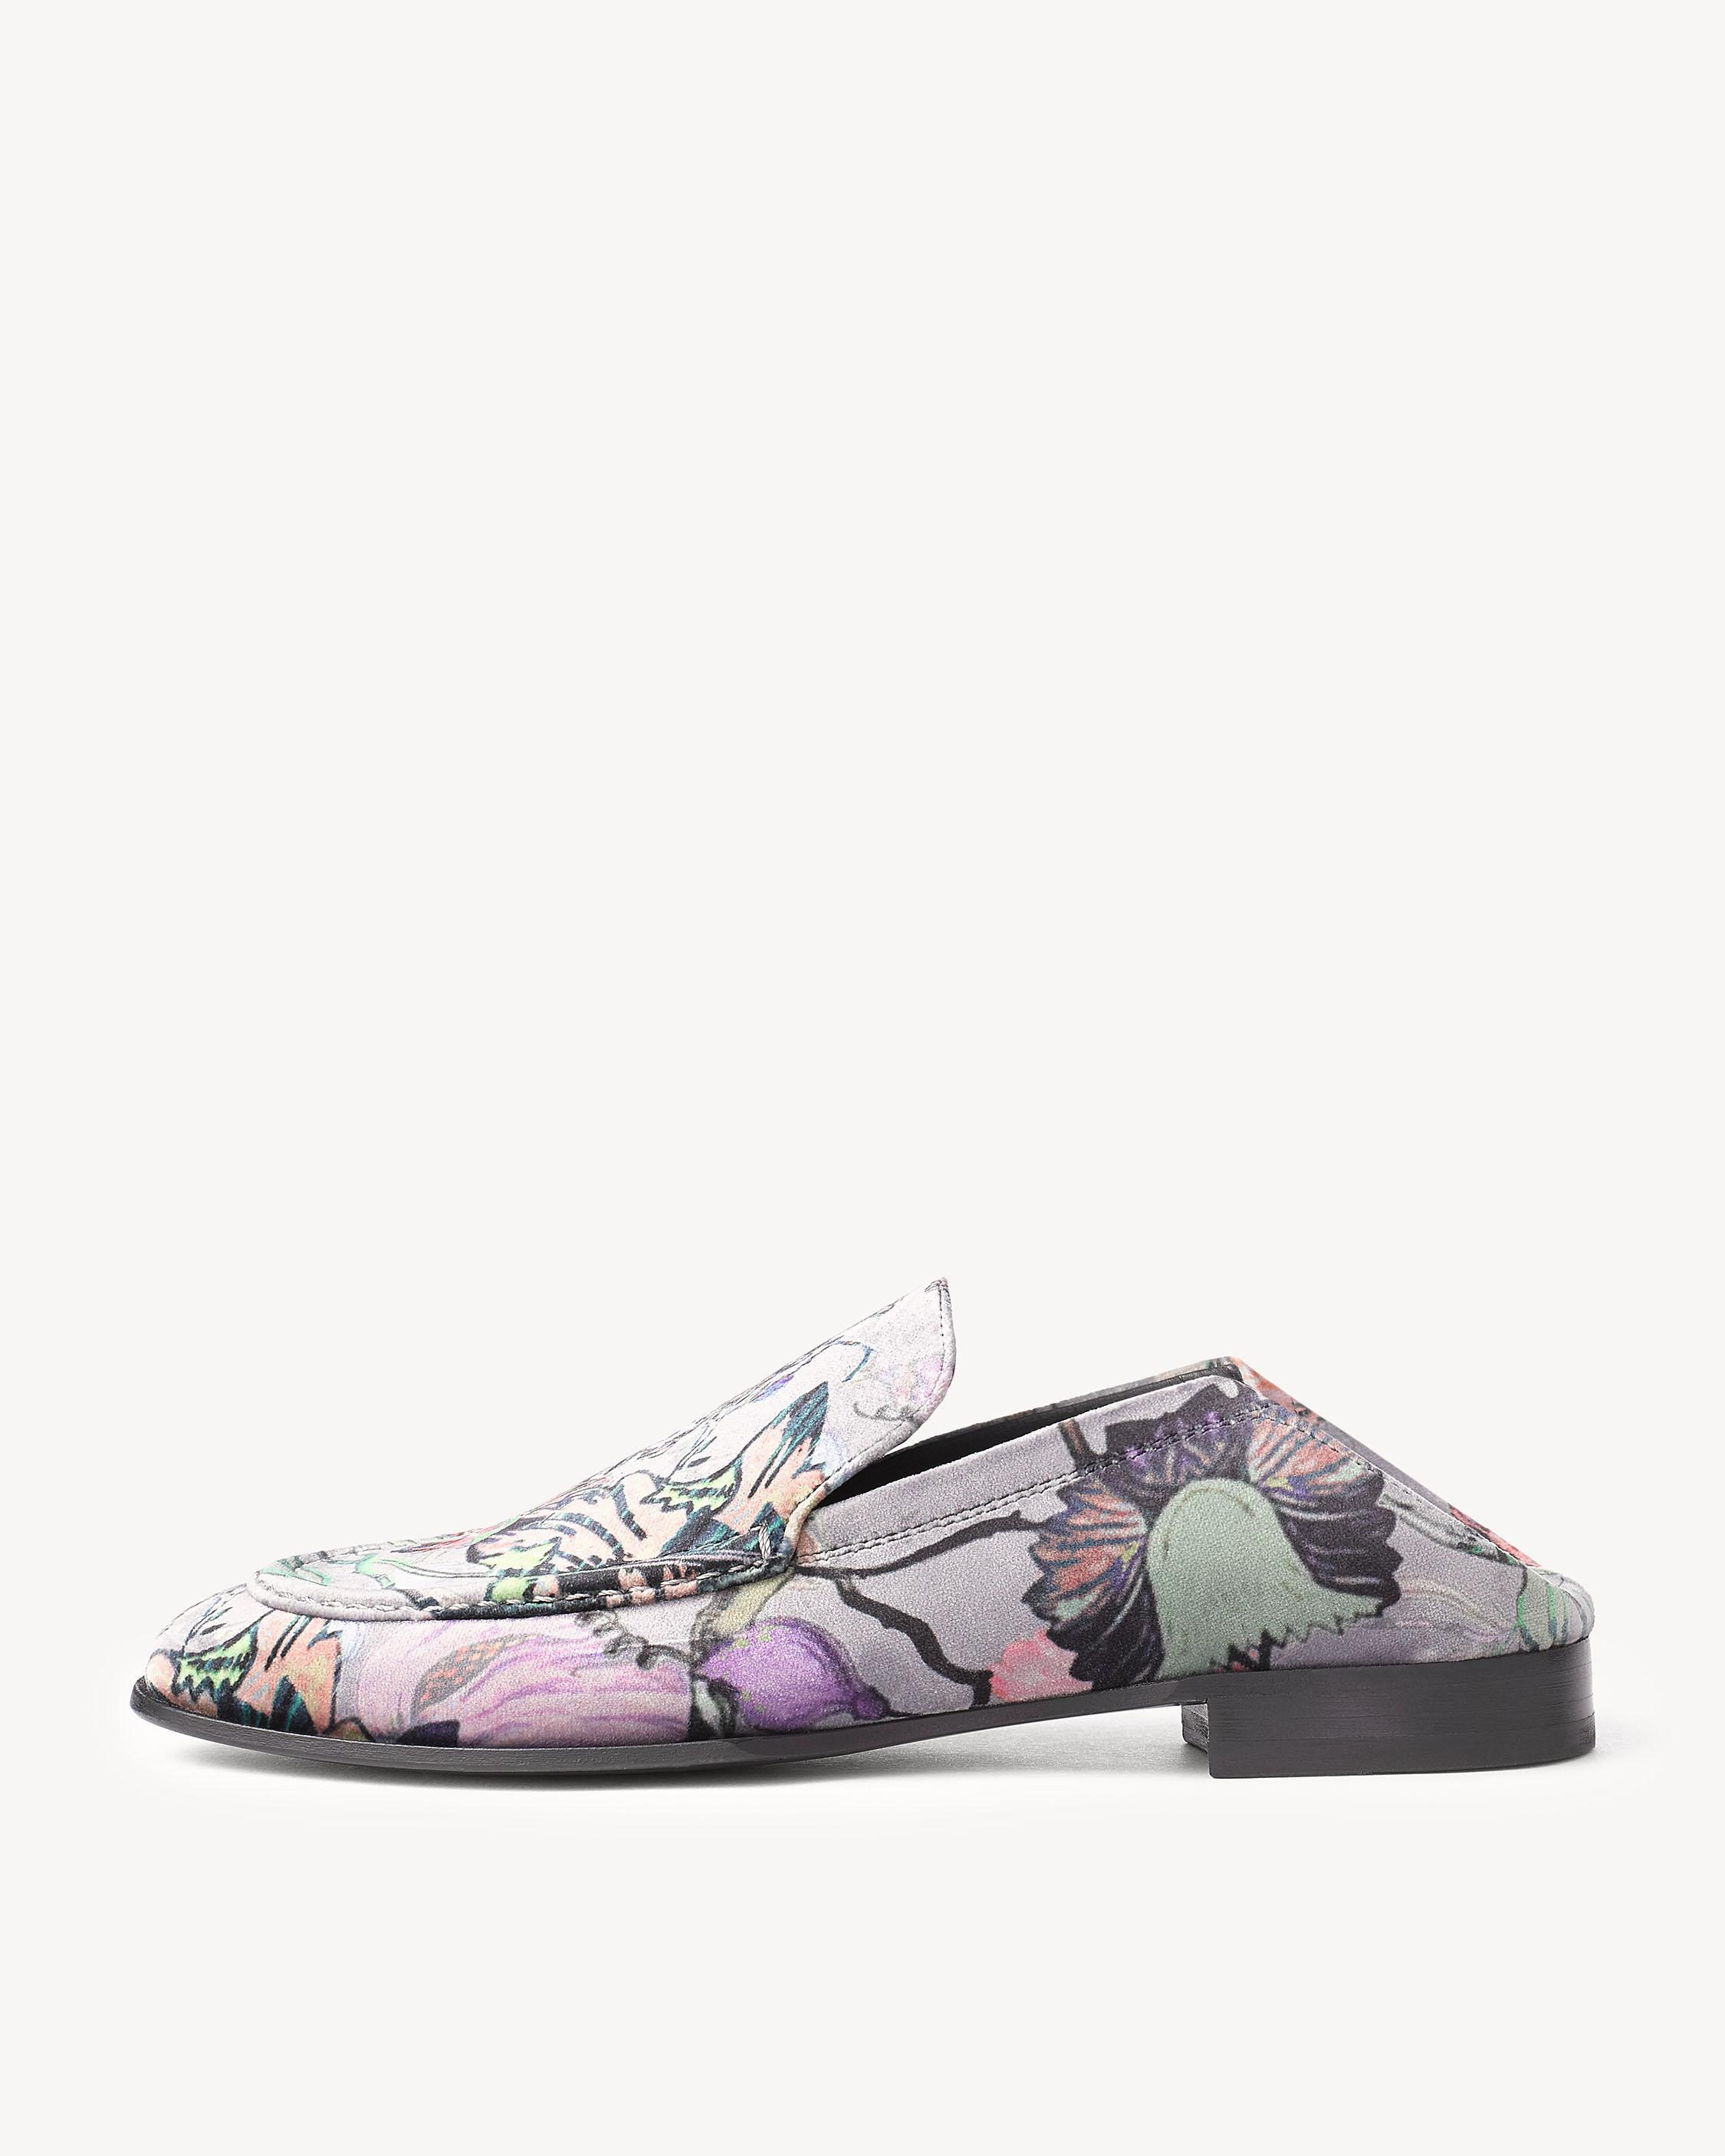 Outlet Many Kinds Of Rag & Bone Alix Floral Loafers Cheap Sale Supply Free Shipping Fast Delivery Fashion Style O16T53